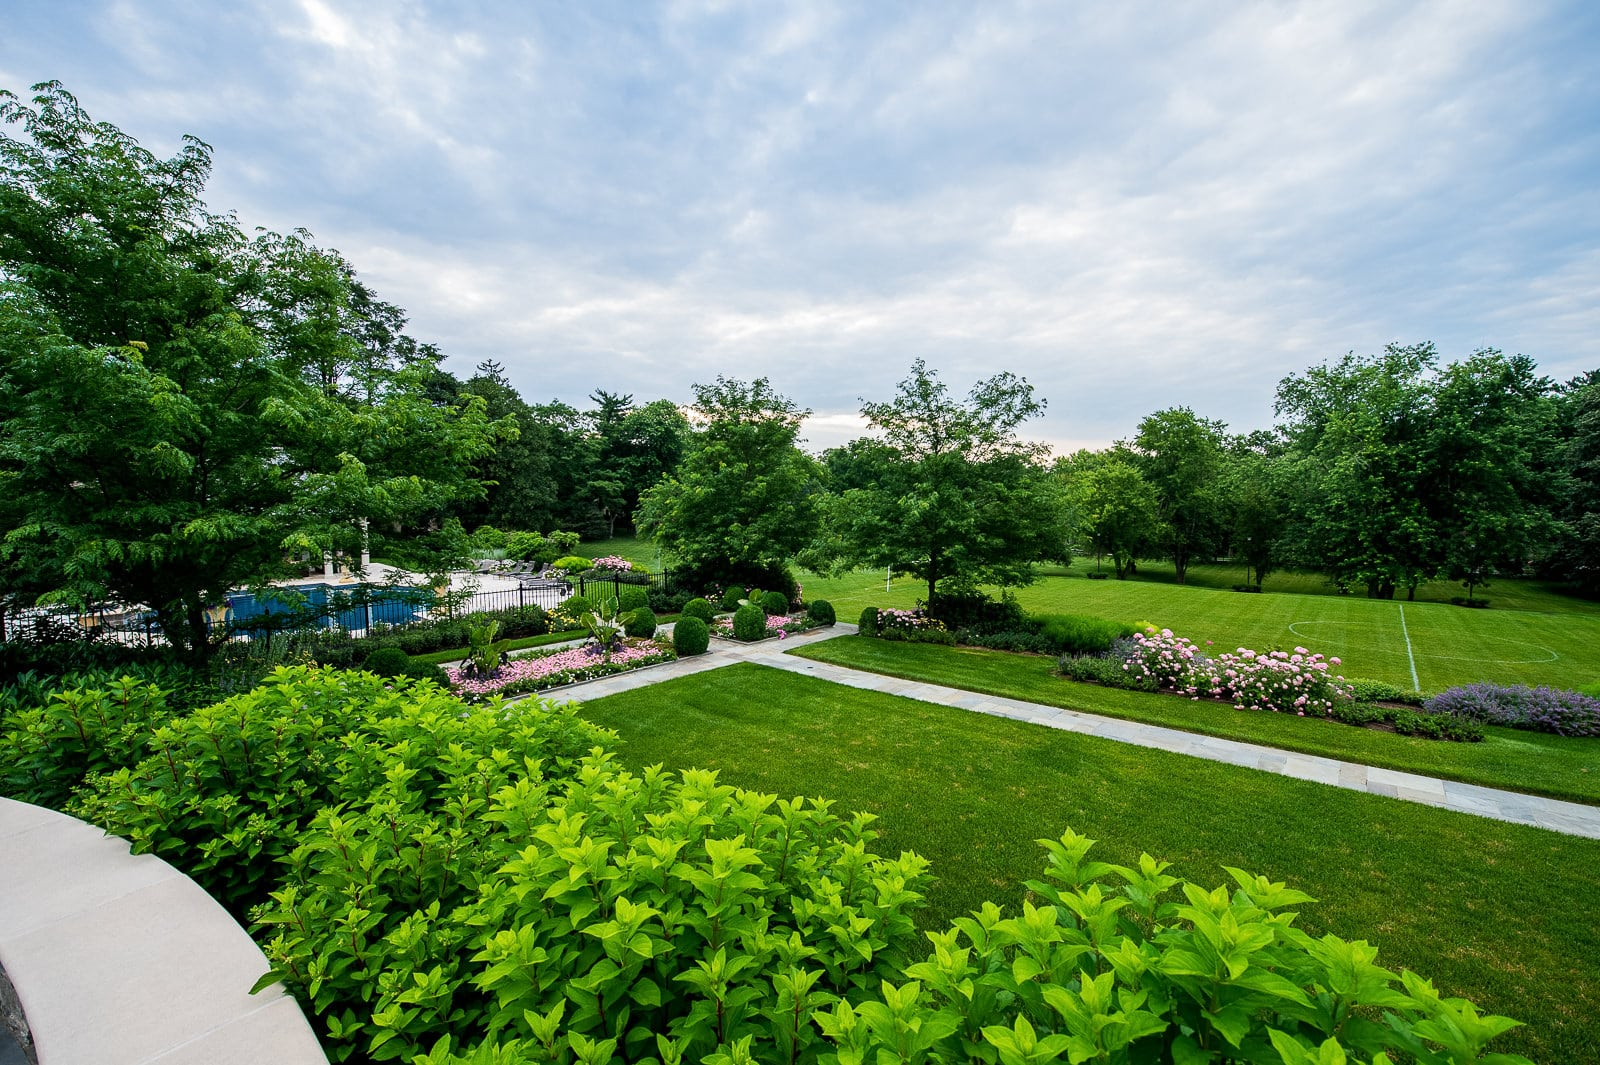 Bryn mawr residence hess landscape architects for Hess landscape architects